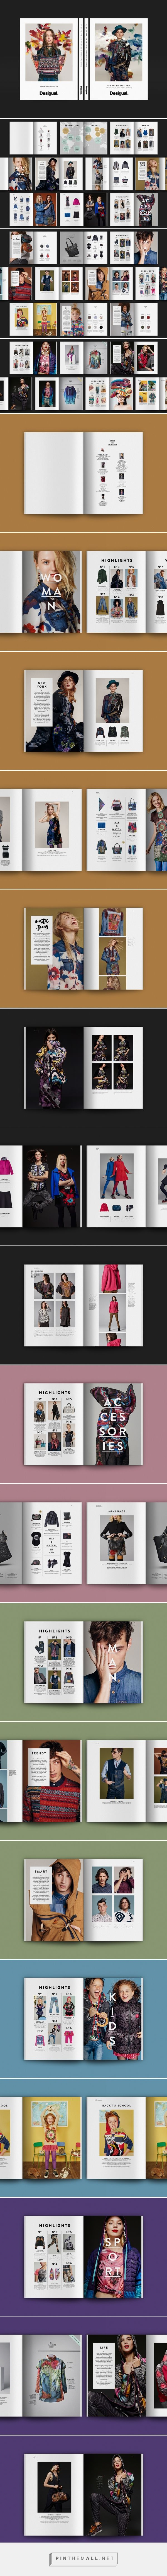 The Collection Book AW16 on Behance